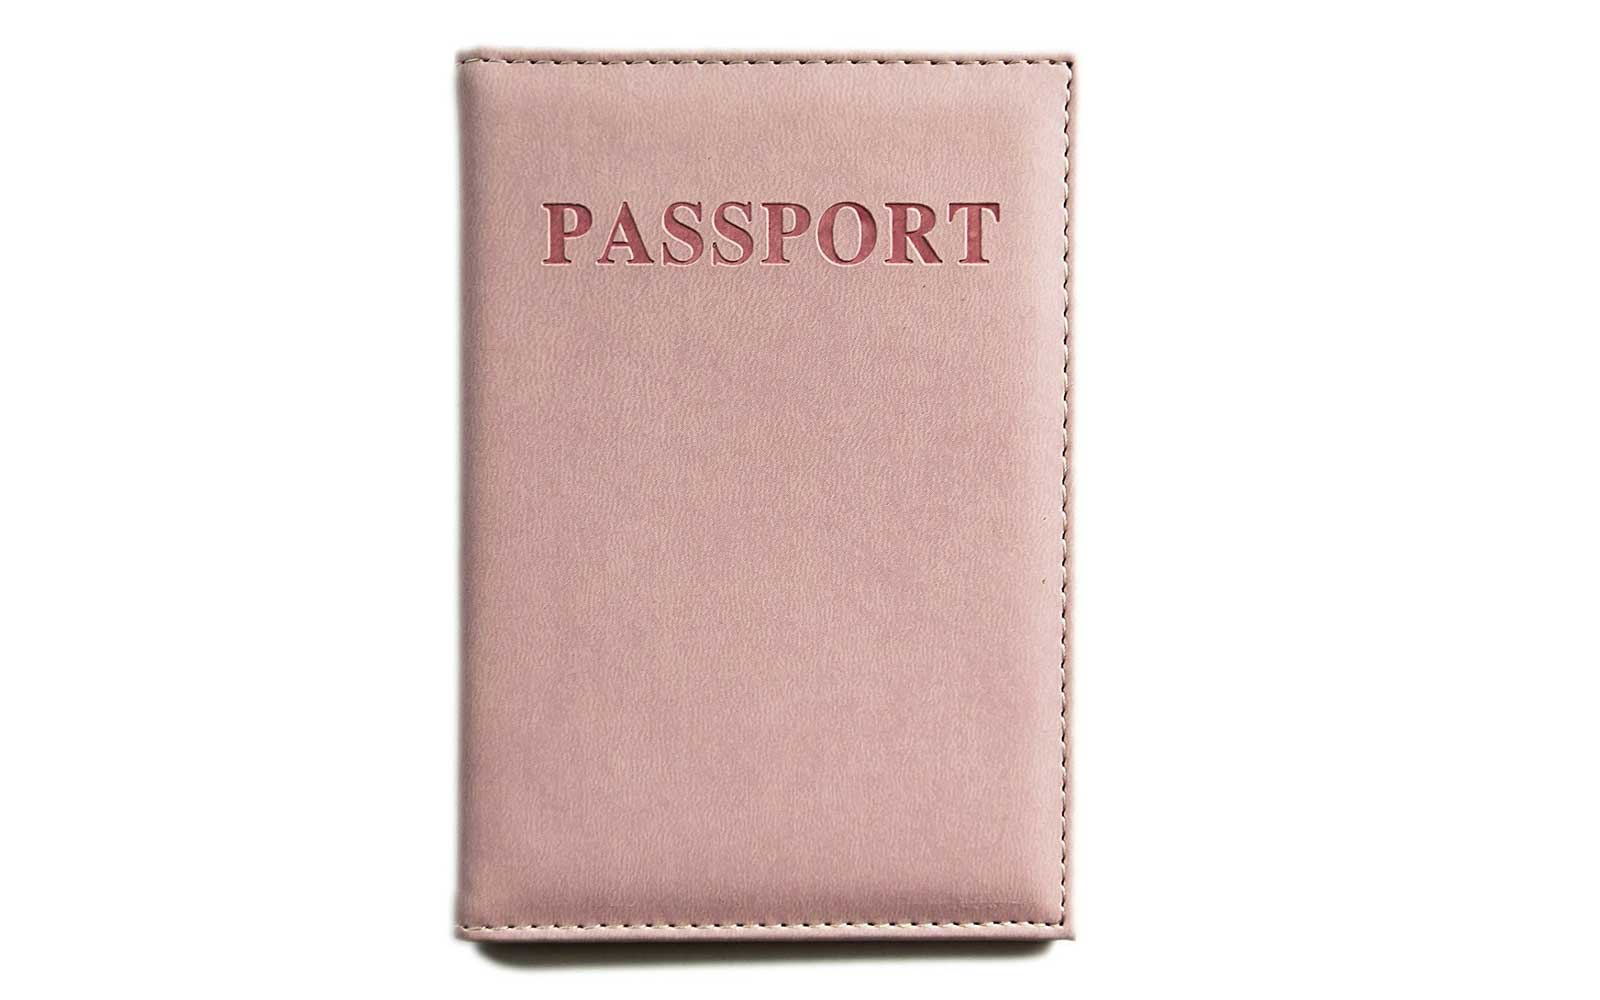 Bestselling Passport cover